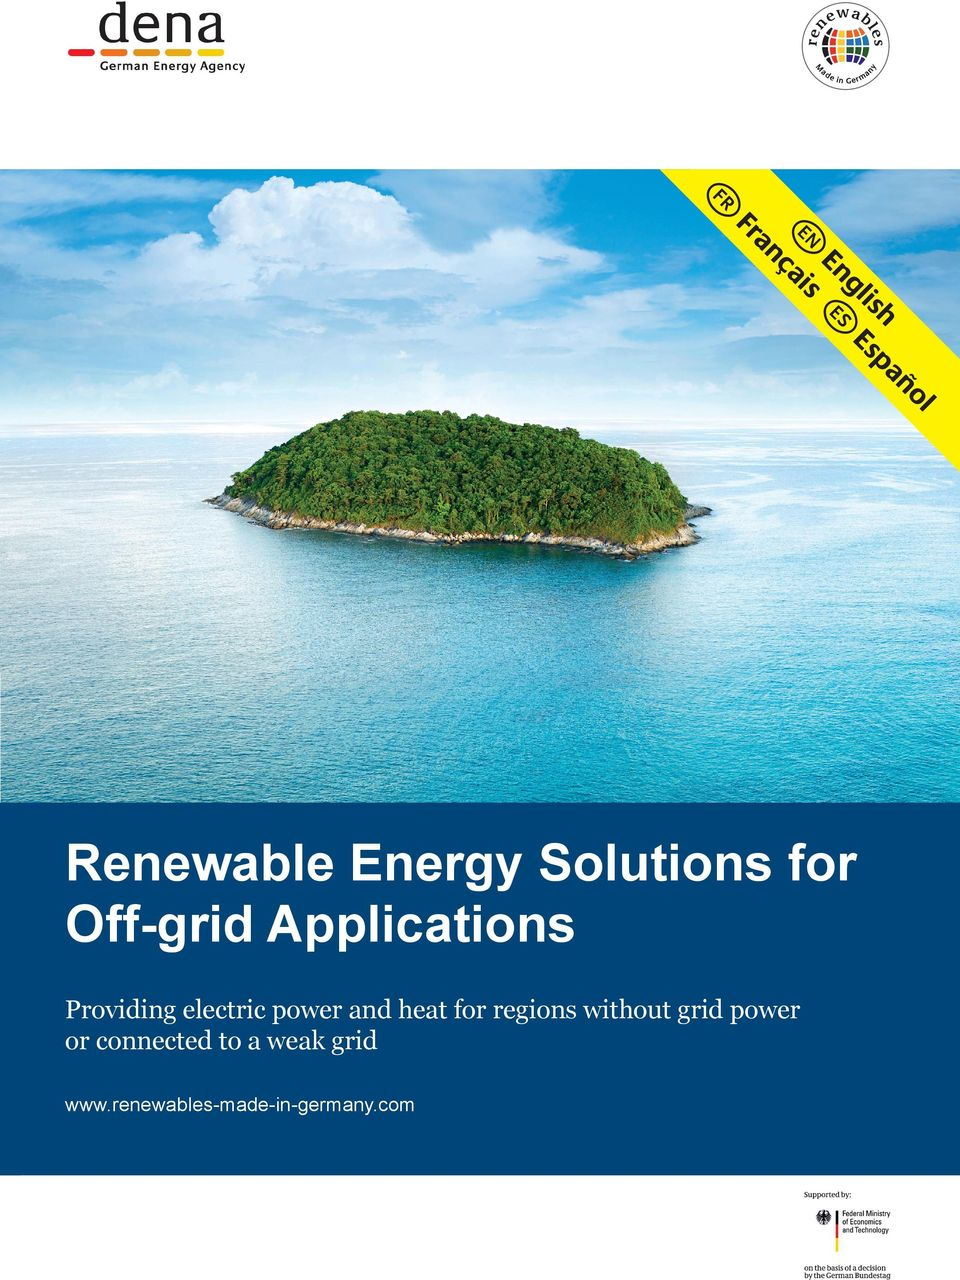 power and heat for regions without grid power or